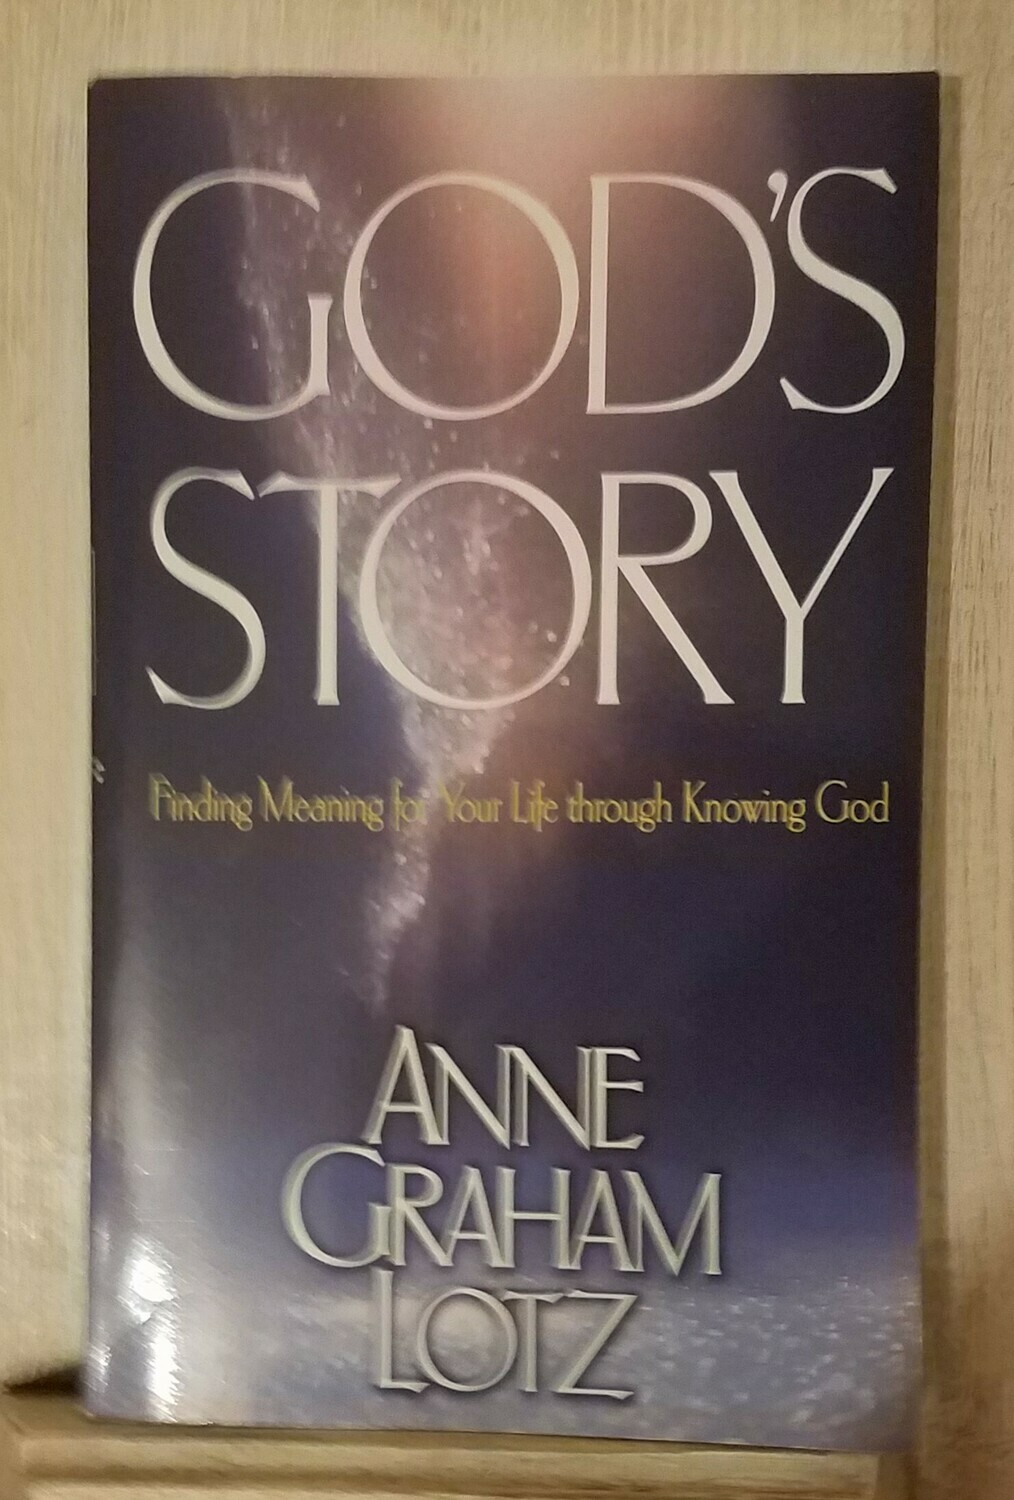 God's Story by Anne Graham Lotz